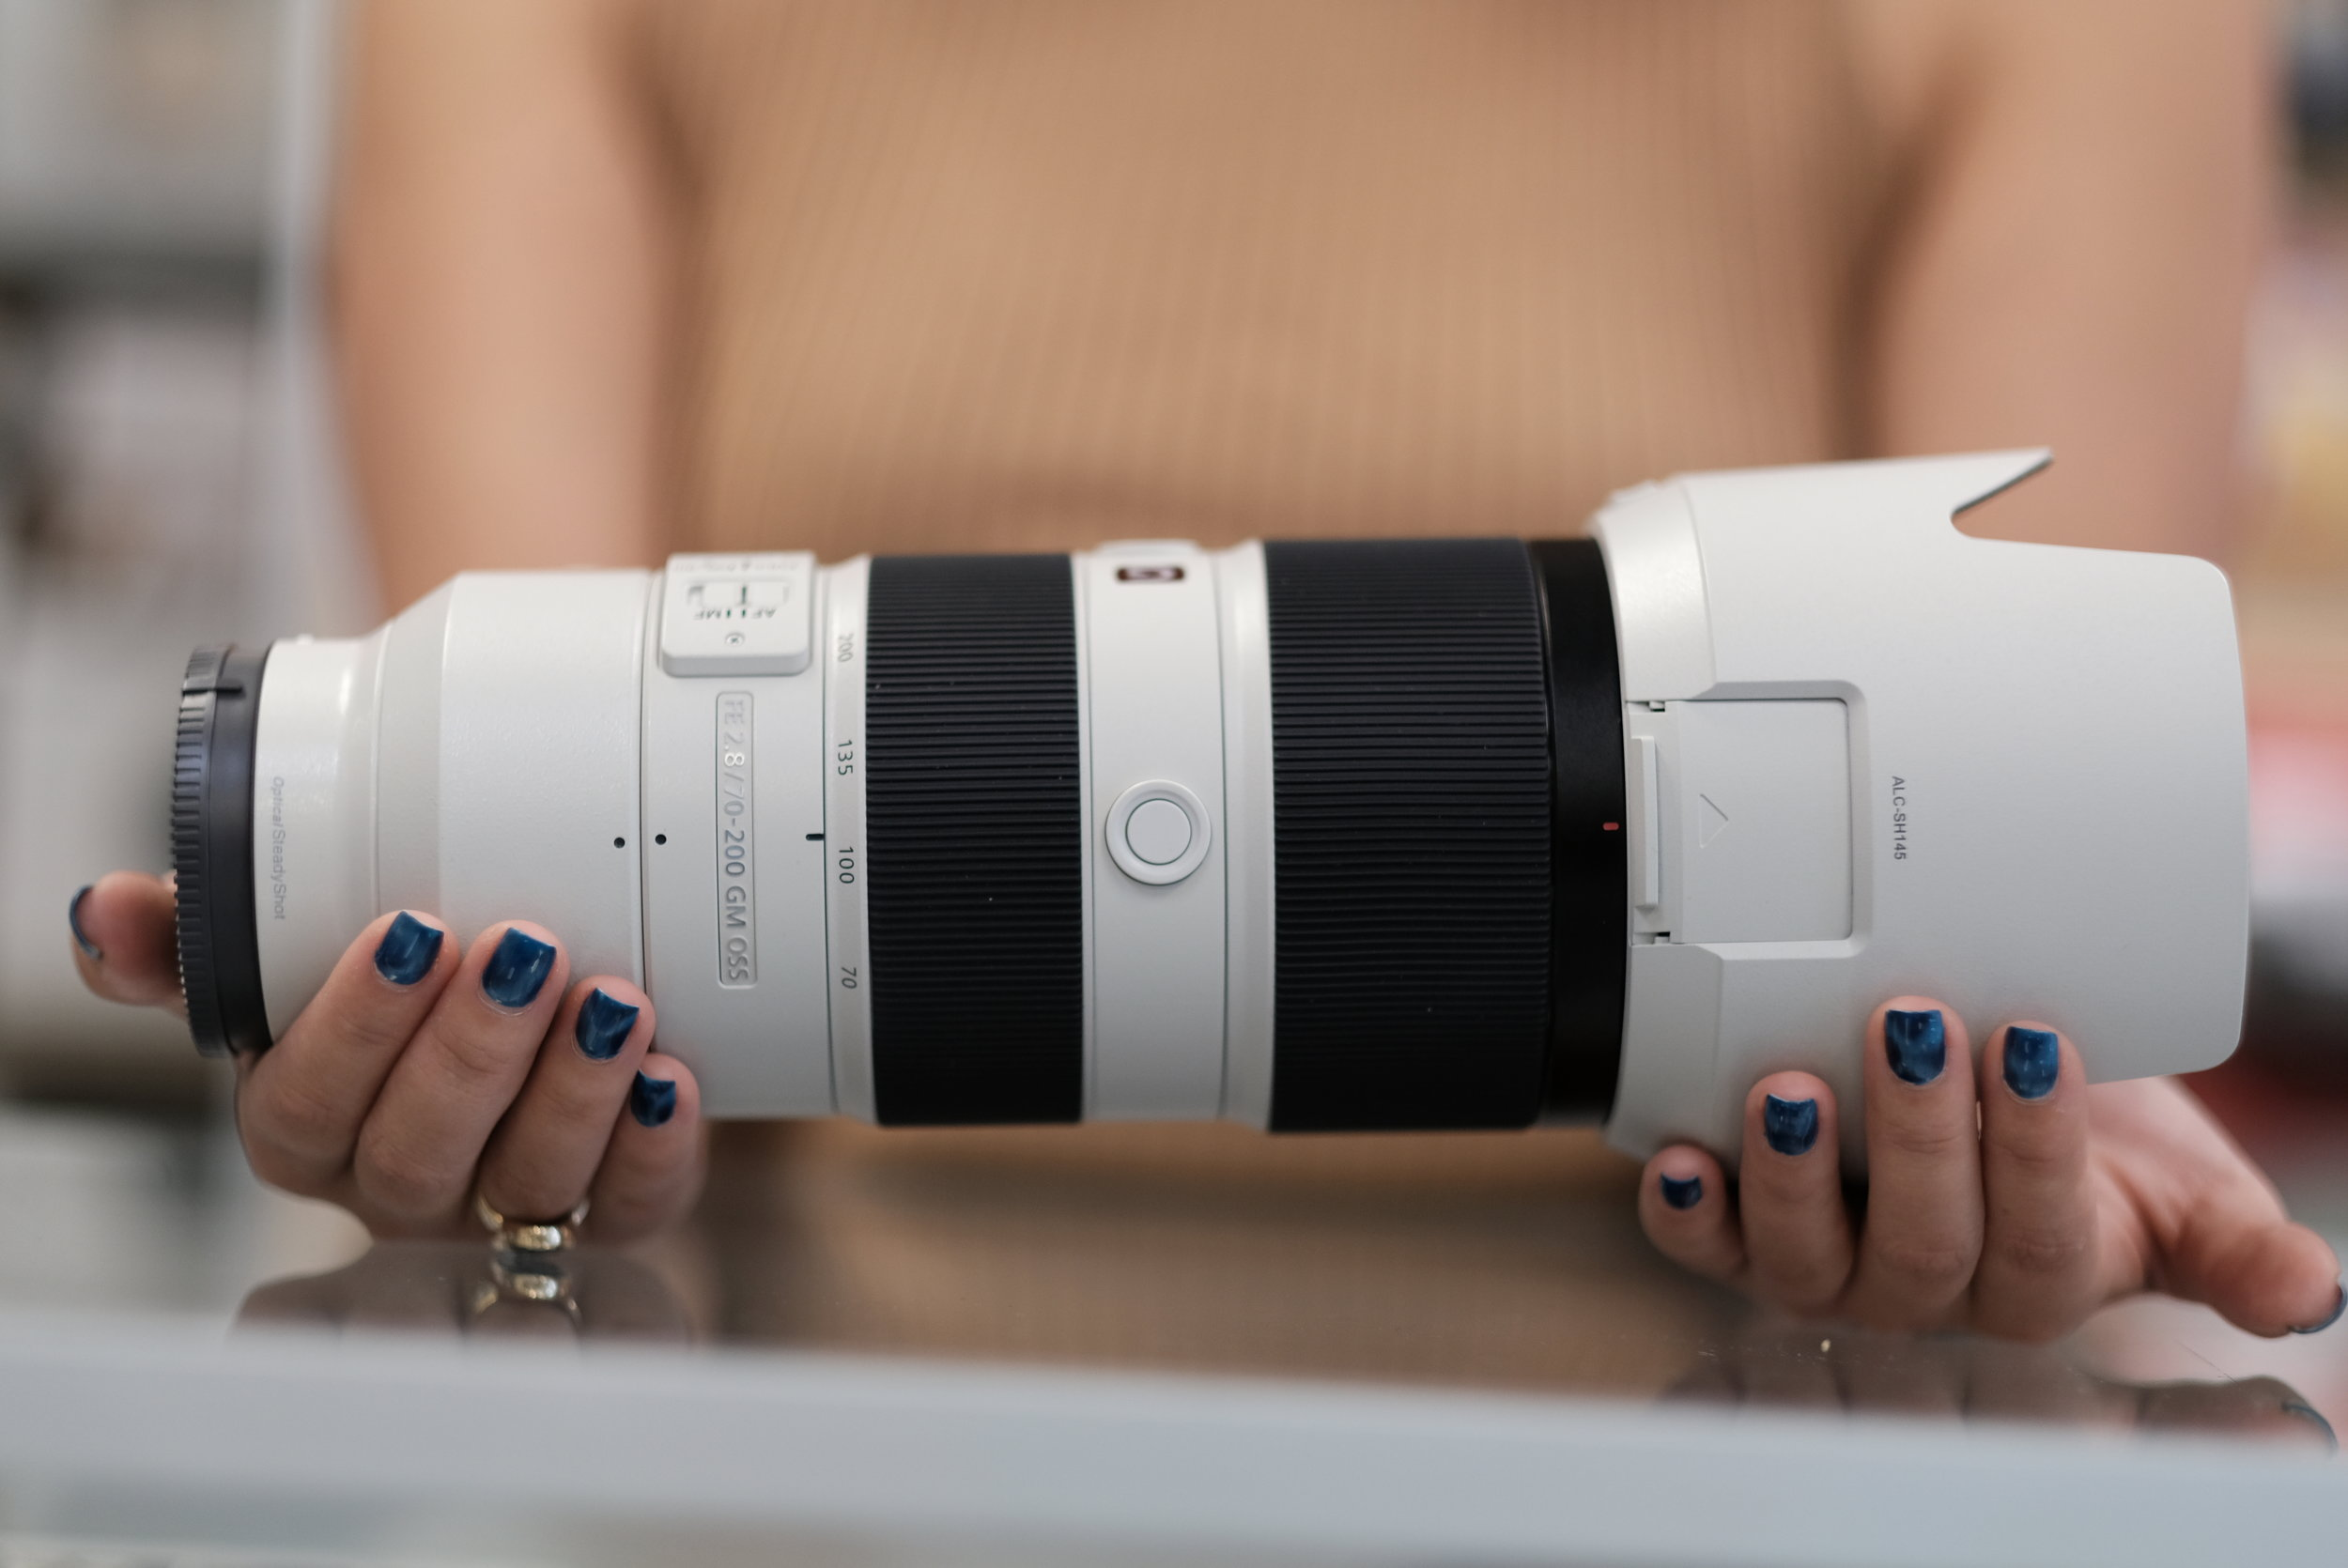 Sony FE 70-200 f/2.8 GM OSS - We already had one of these used and it only lasted a few days! With a minimum focus distance of 3 feet, Sony's Extreme Aspherical element and lightning quick auto focus this lens can handle everything from portraiture to sports!Price: SOLDPosted: July 14